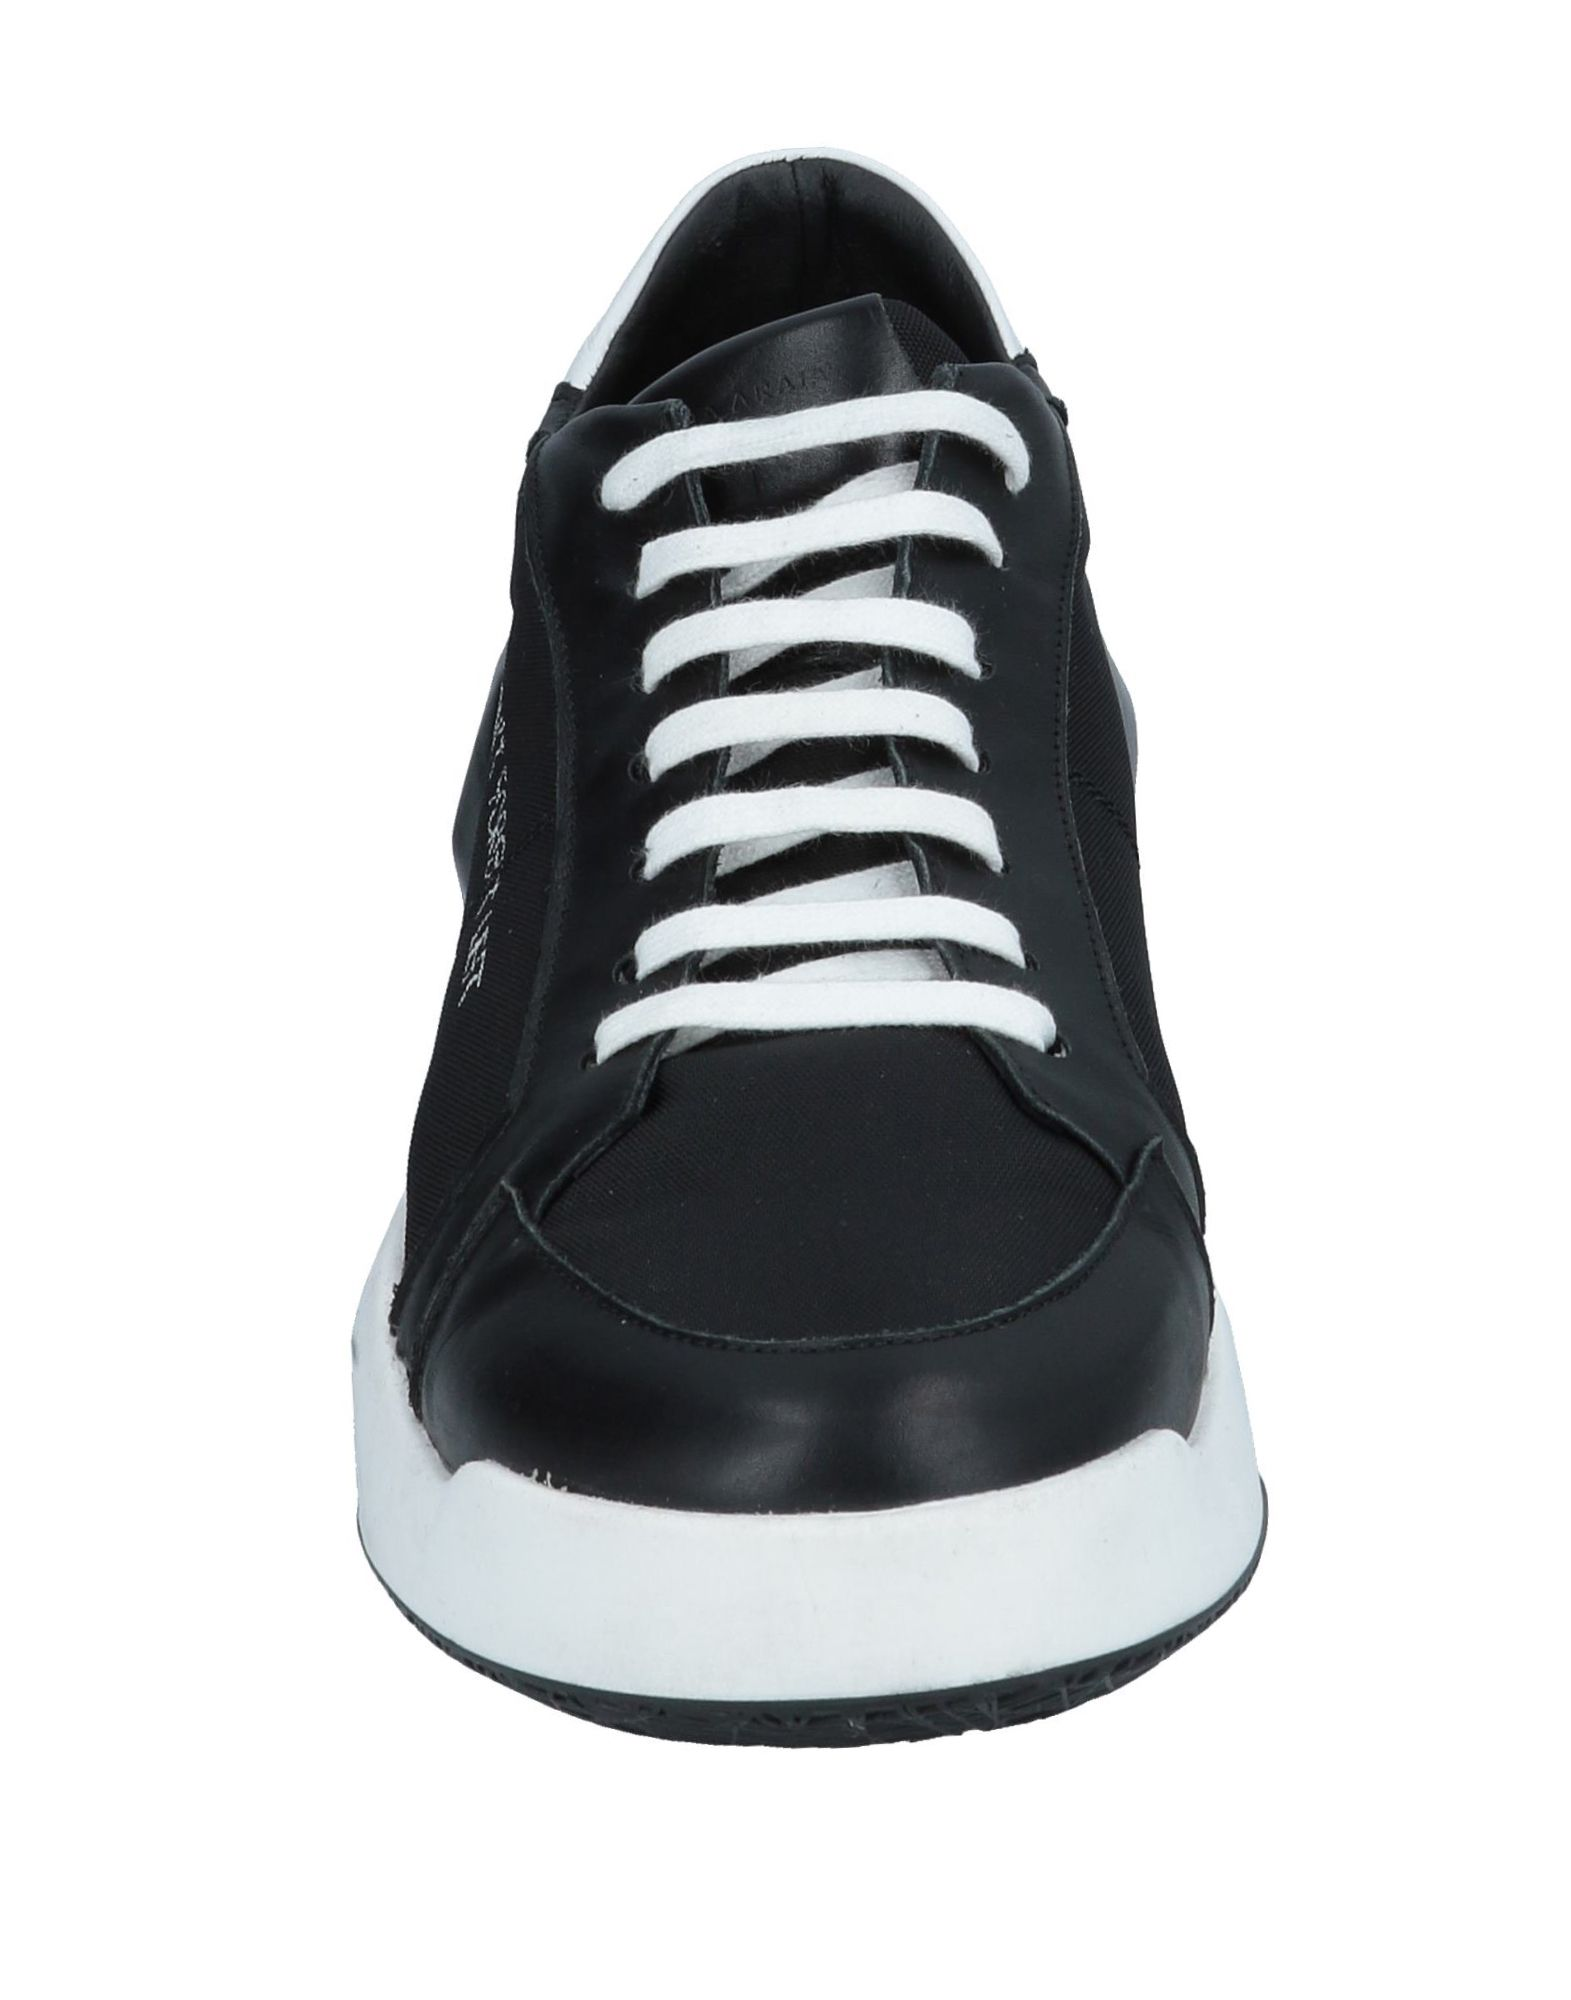 Cinzia Araia Sneakers - Men Men Men Cinzia Araia Sneakers online on  Canada - 11573455VF 5d9362